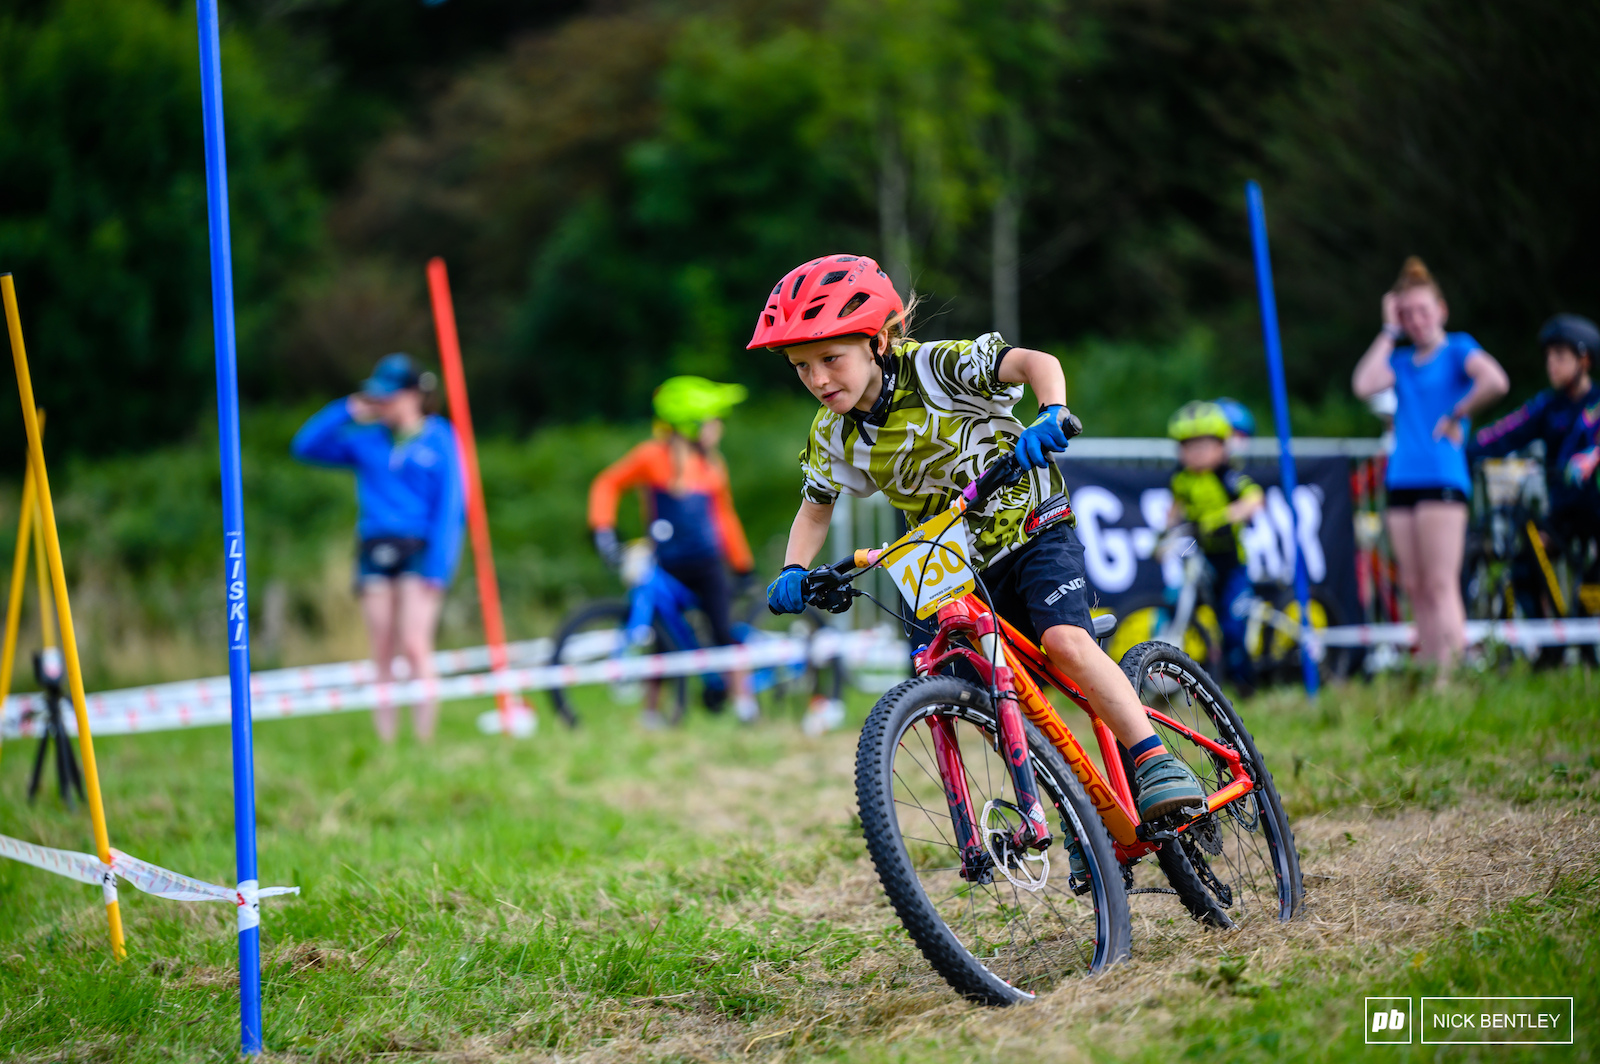 Even the young riders were setting up straight lines through the Slalom course